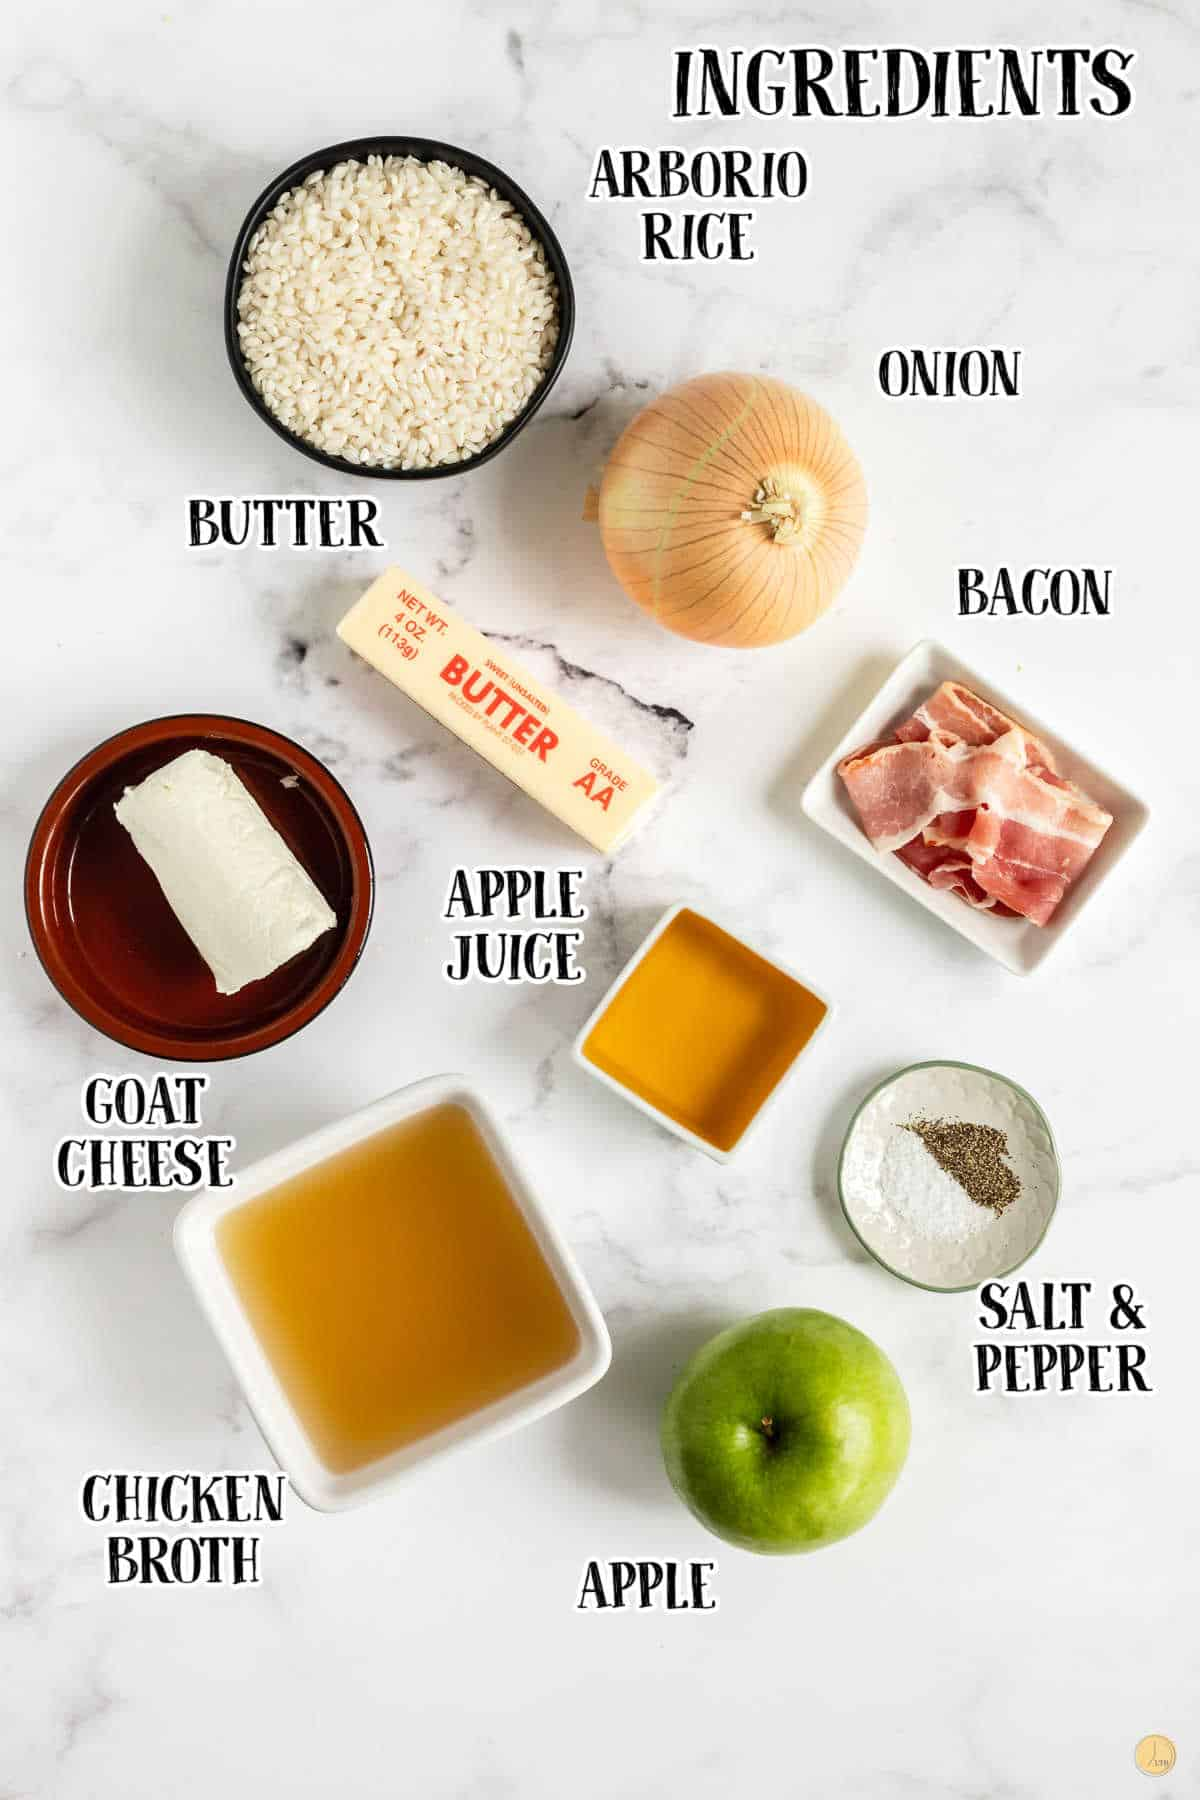 labeled picture of risotto ingredients